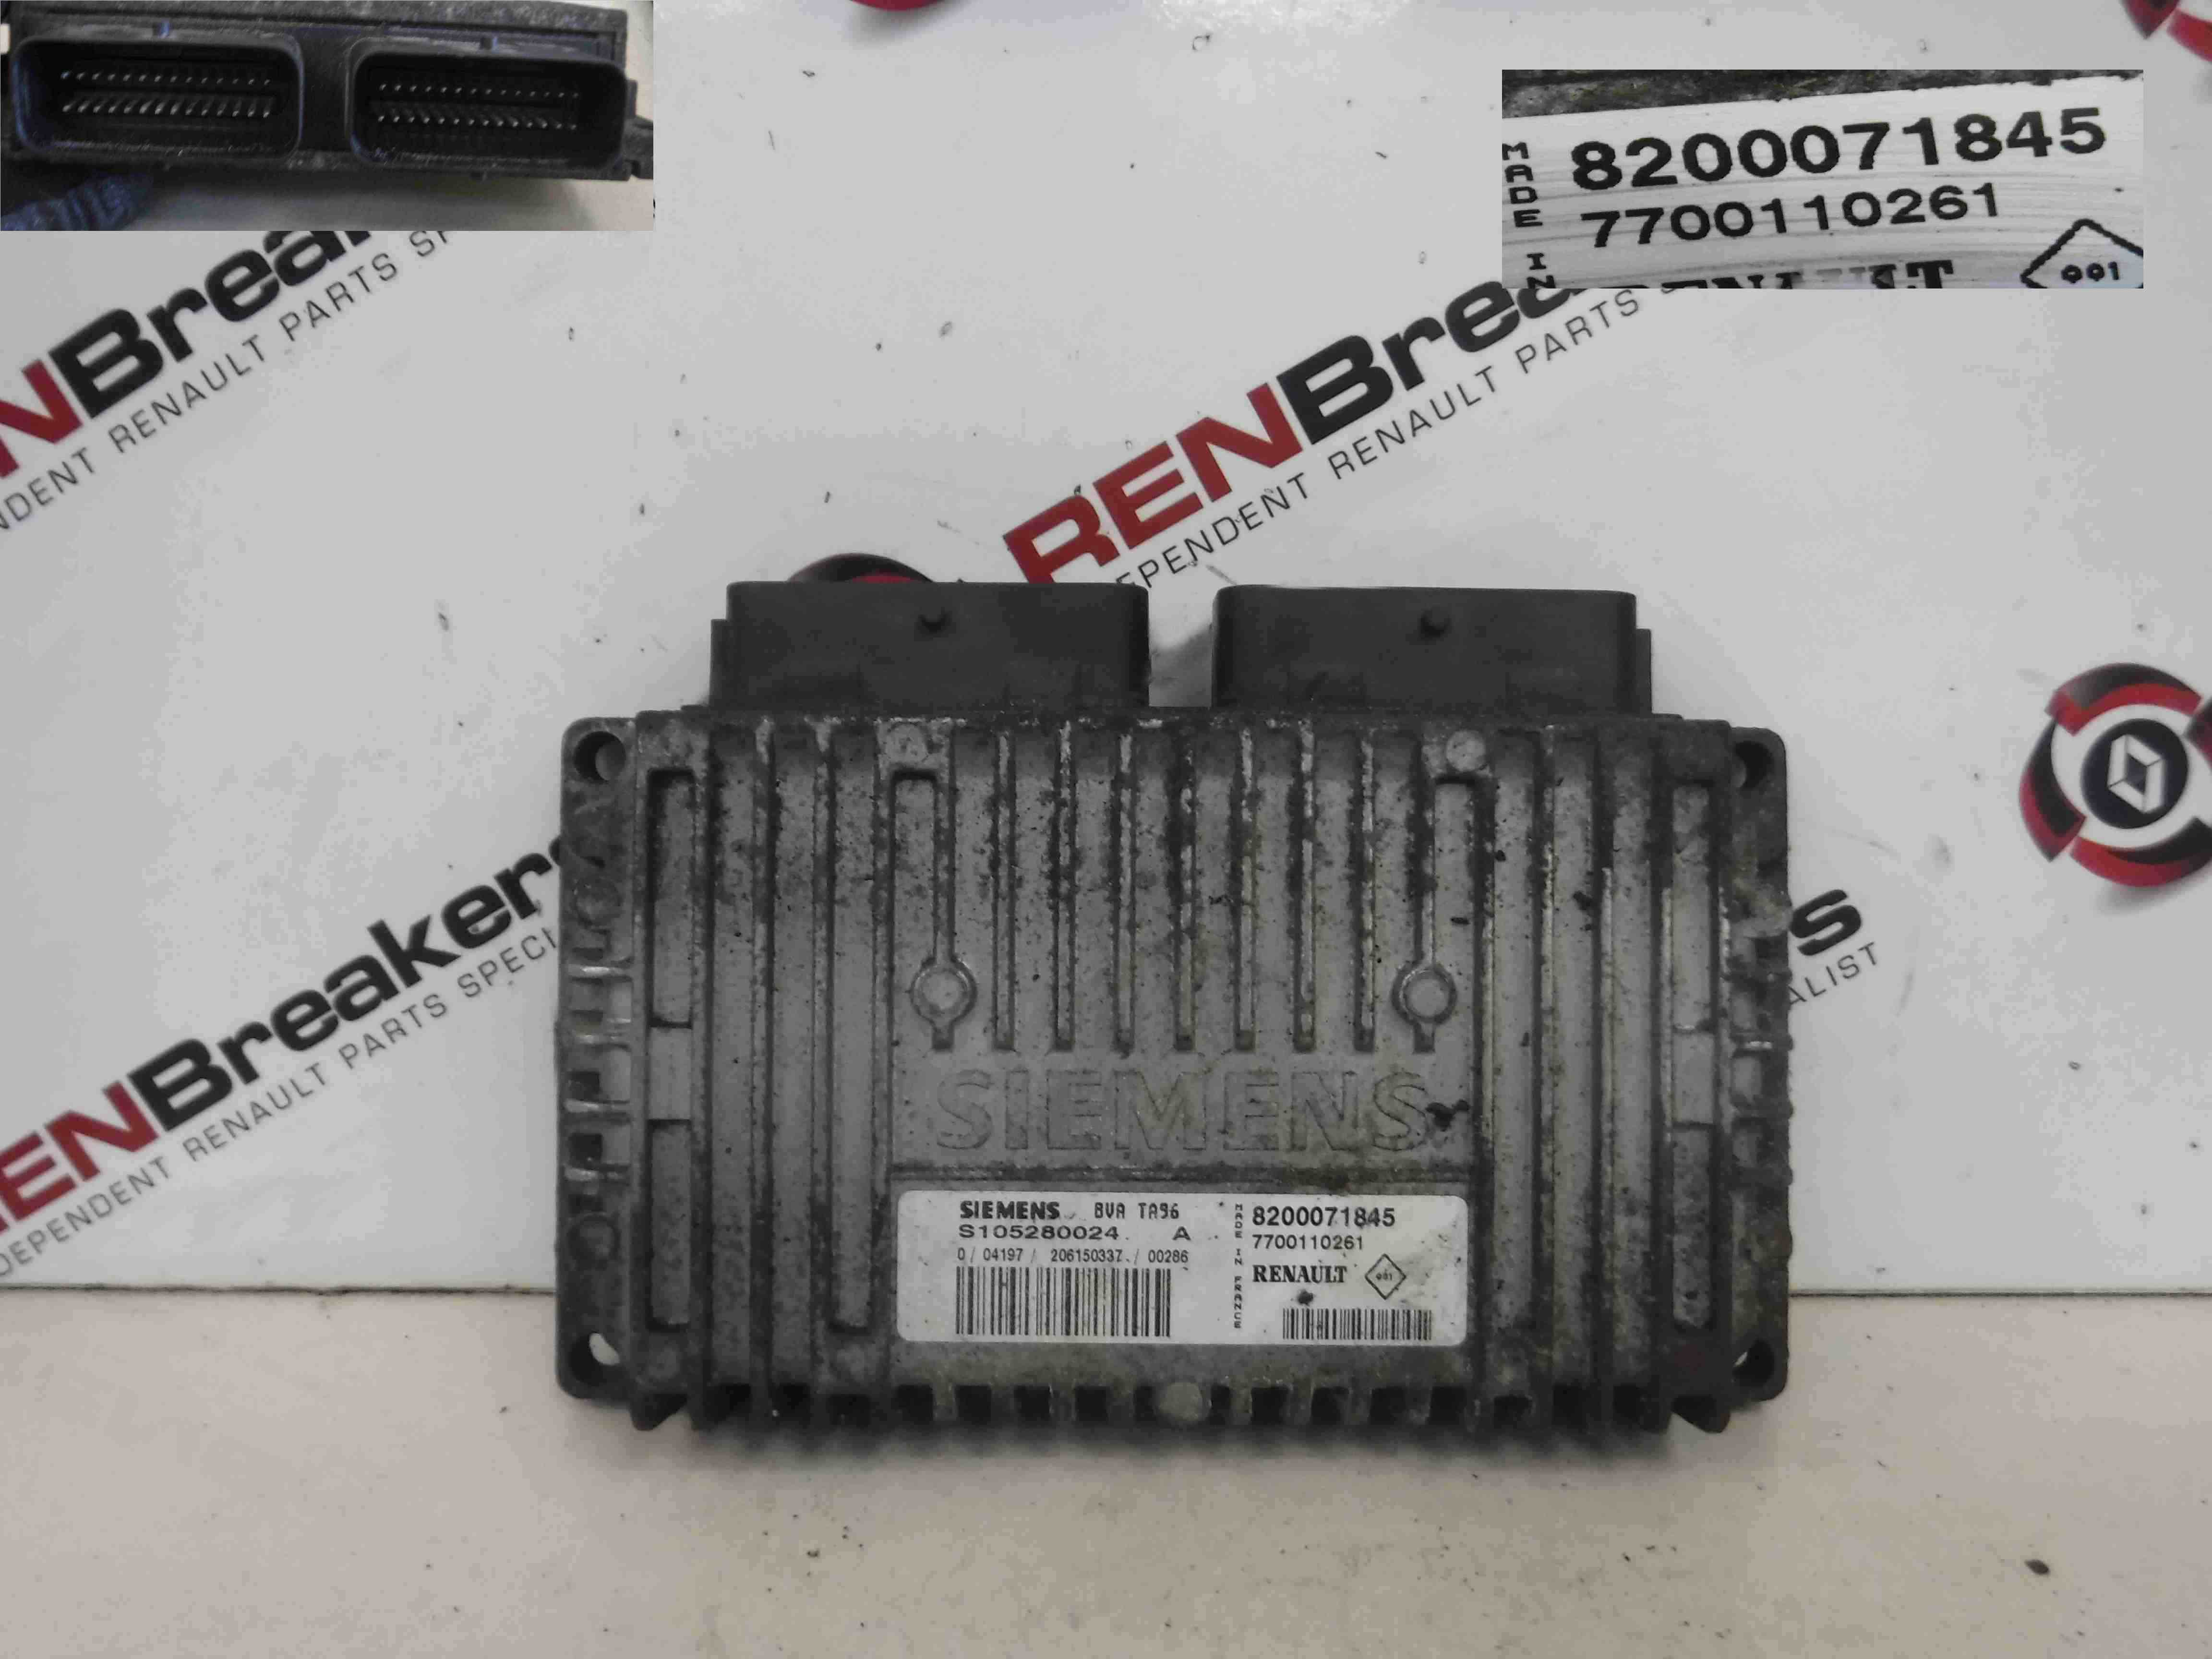 Renault Grand Scenic 2003-2009 2.0 16v Automatic Gearbox ECU